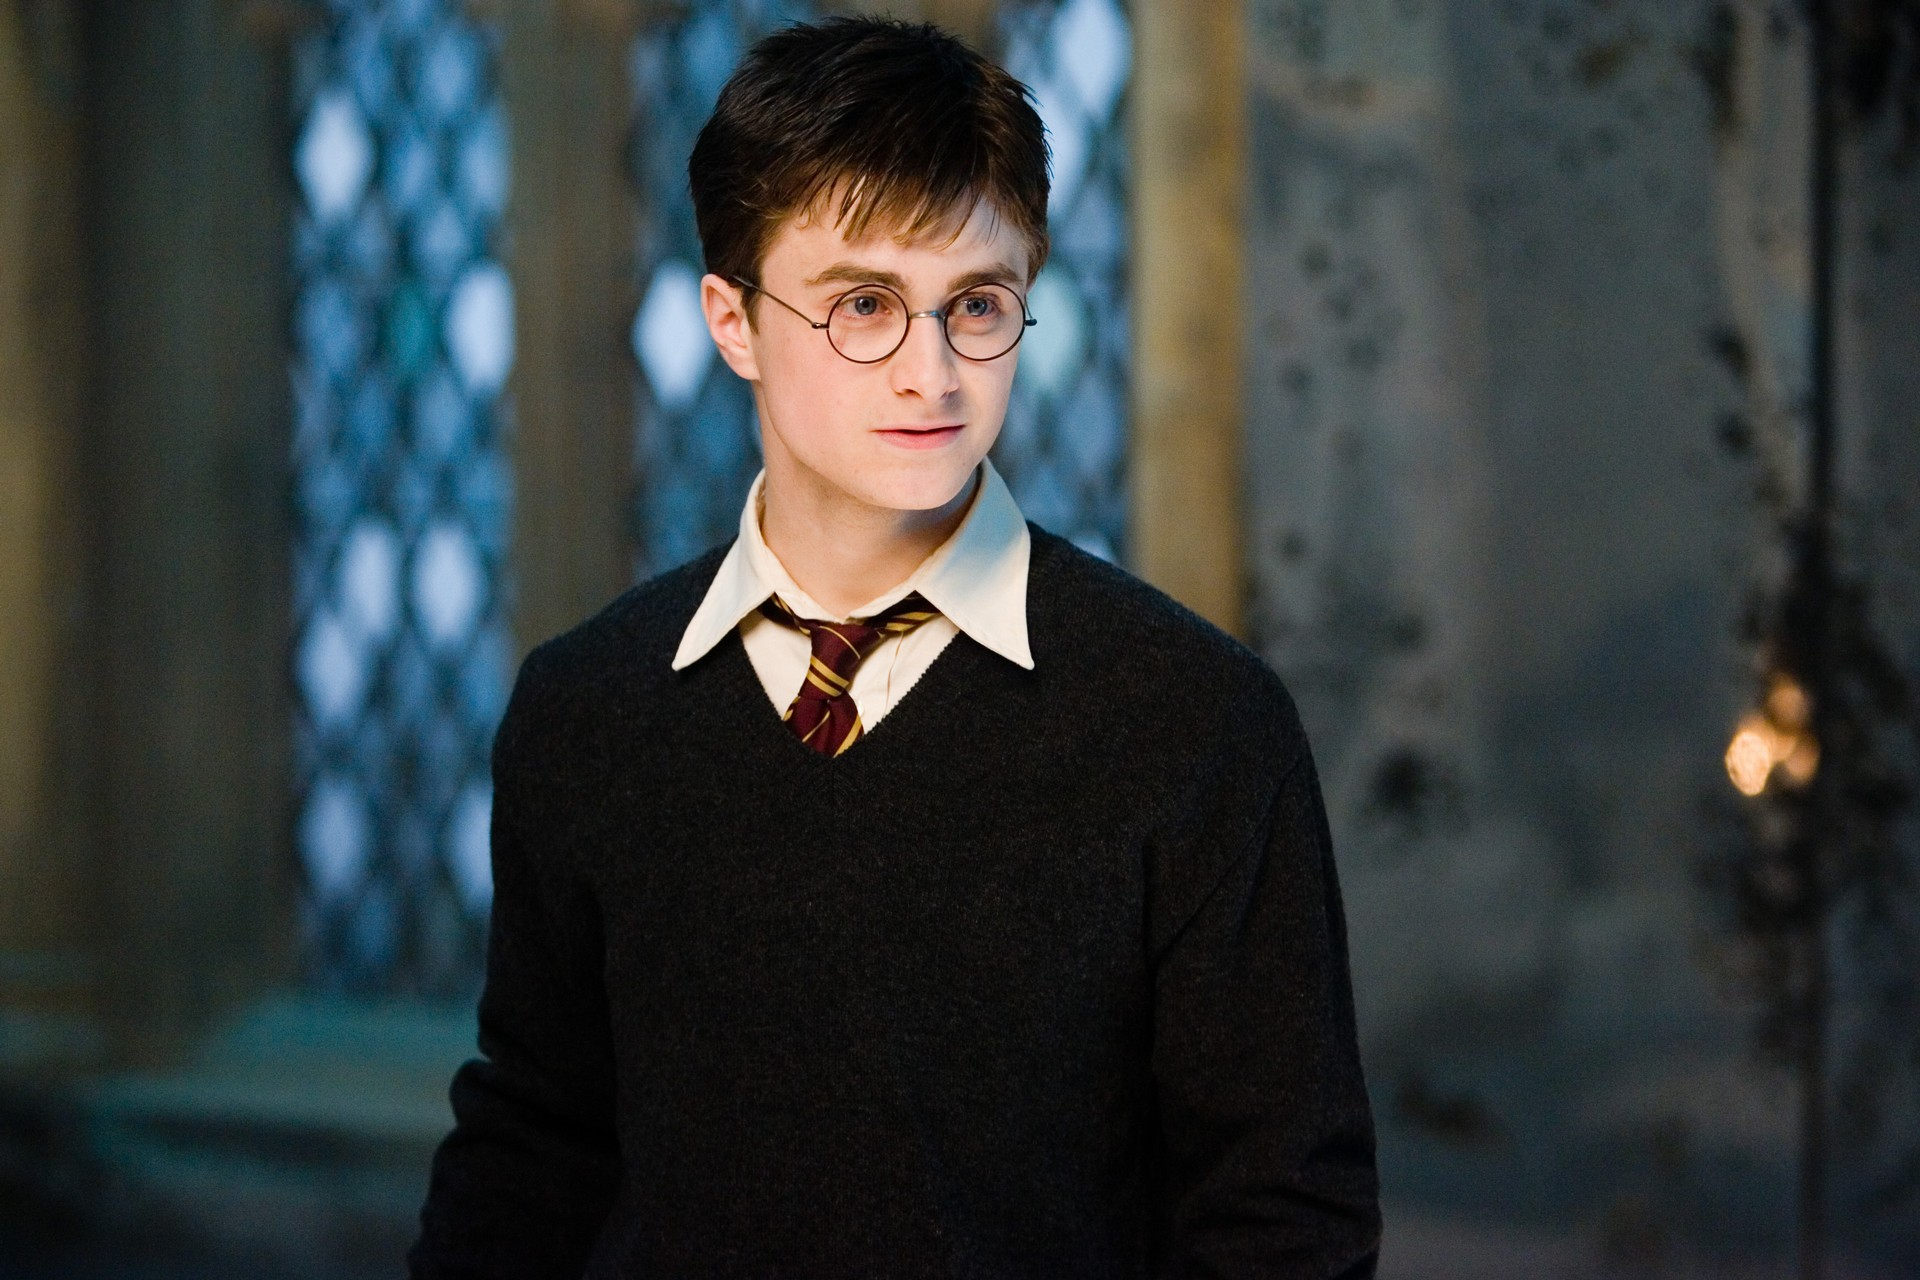 Harry Potter compie 20 anni: Facebook lo celebra con un easter egg